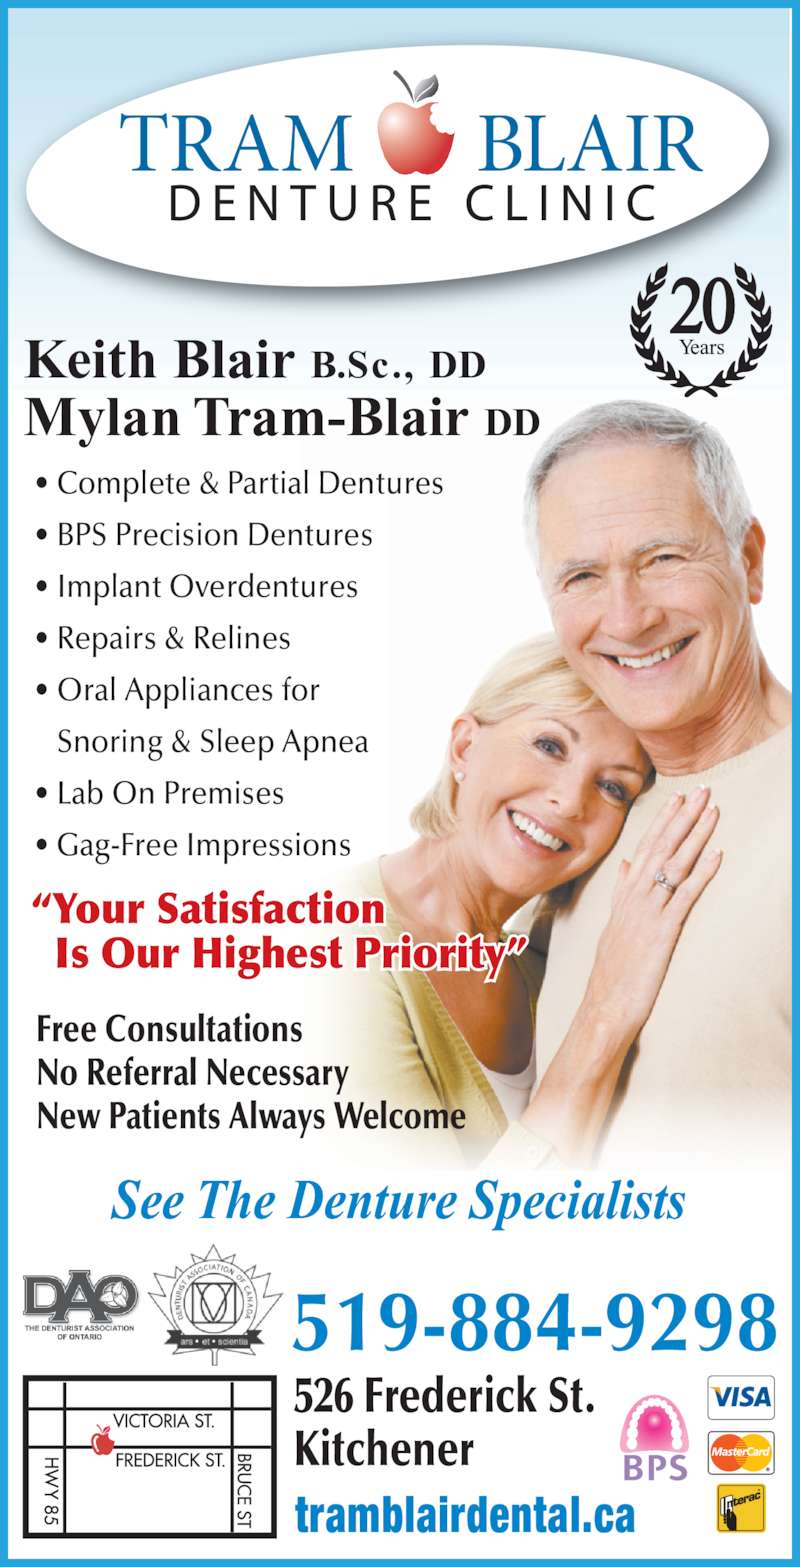 Tram-Blair Denture Clinic (519-884-9298) - Display Ad - New Patients Always Welcome 20 Keith Blair B.Sc., DD See The Denture Specialists Mylan Tram-Blair DD 519-884-9298 526 Frederick St. Kitchener ?Your Satisfaction   Is Our Highest Priority? Free Consultations tramblairdental.ca ? Complete & Partial Dentures ? BPS Precision Dentures ? Implant Overdentures ? Repairs & Relines ? Oral Appliances for    Snoring & Sleep Apnea ? Lab On Premises ? Gag-Free Impressions No Referral Necessary